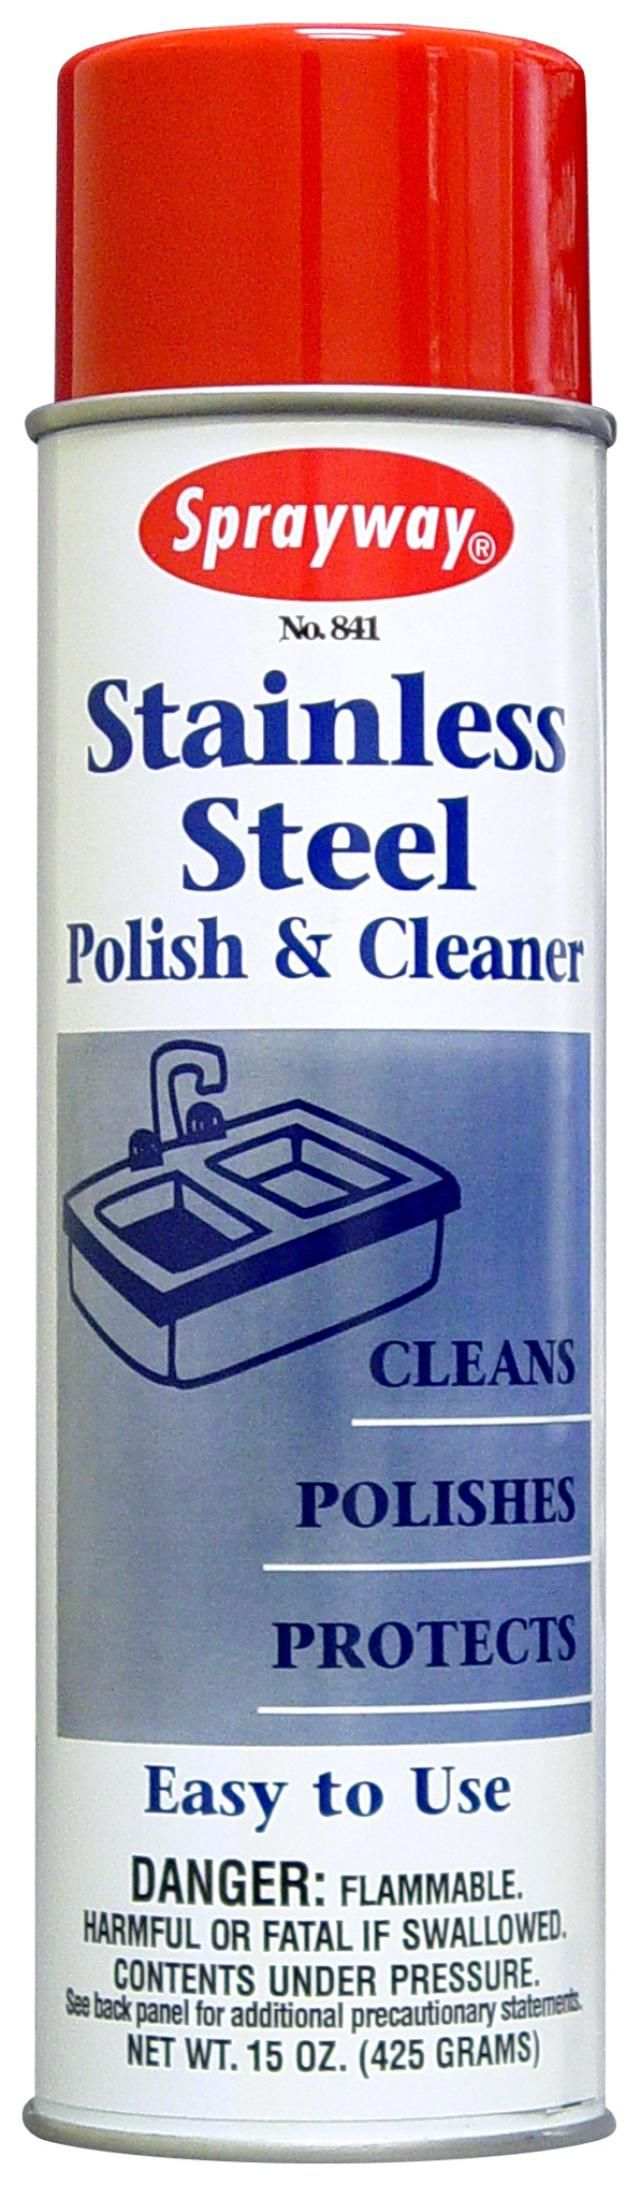 Best Appliance Stainless Steel Cleaners